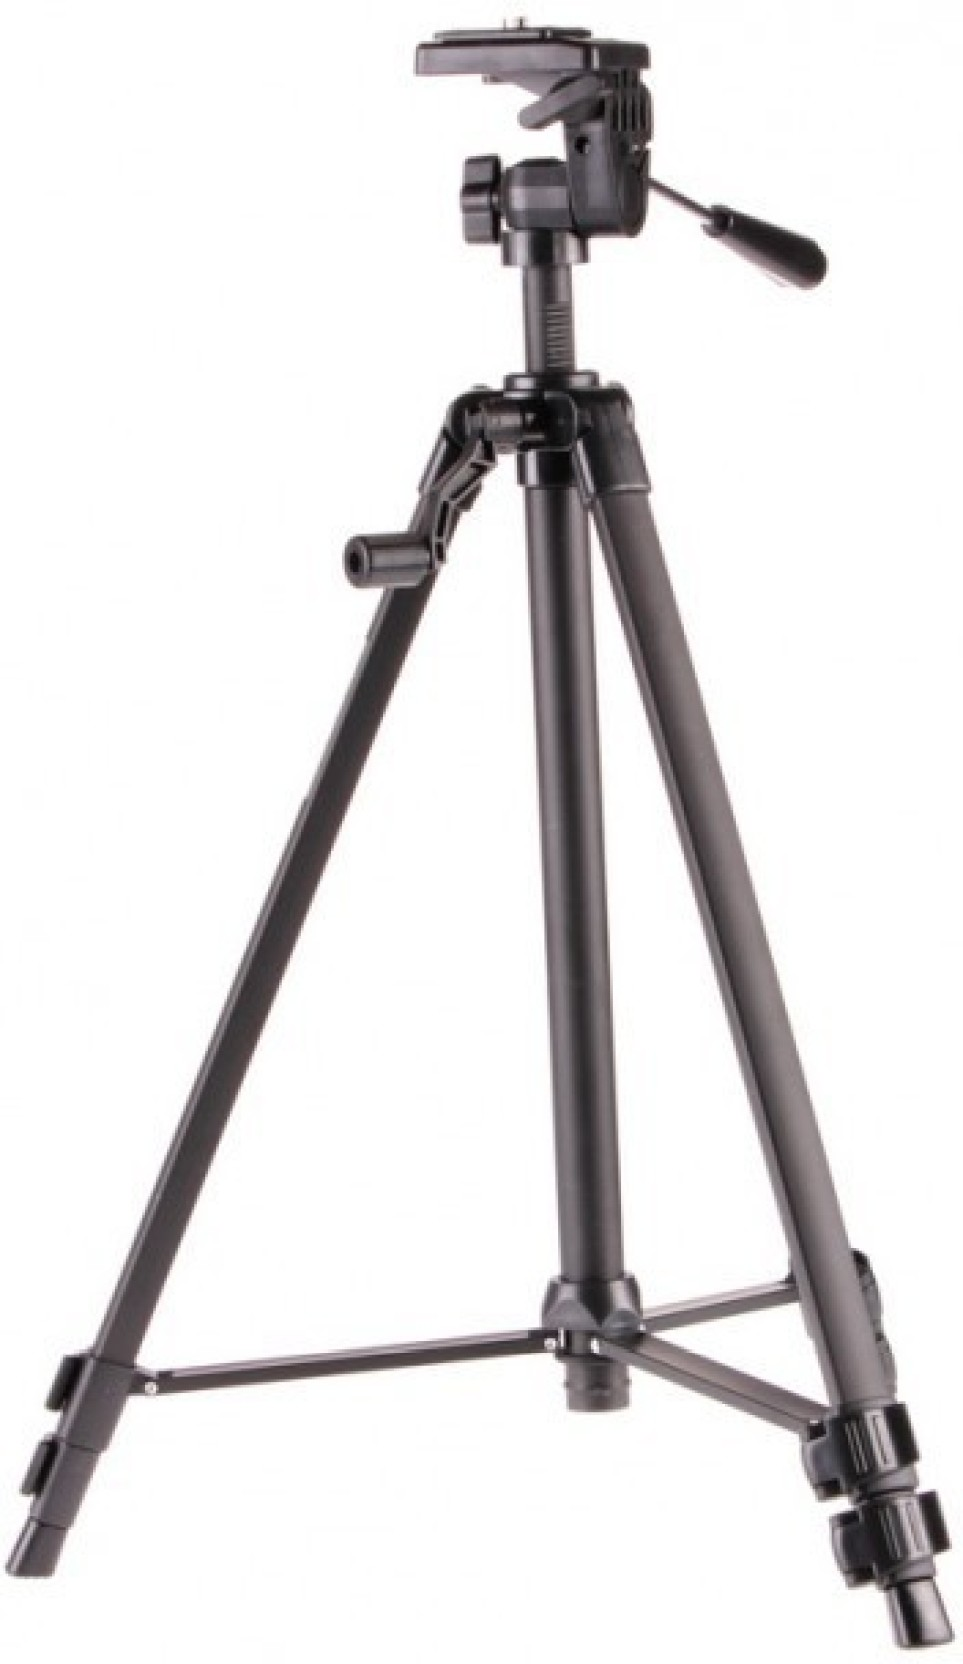 Power Smart Wt 330a Portable Stand Kit For Professional Digital Slr Fotopro X Go Plus Add To Cart